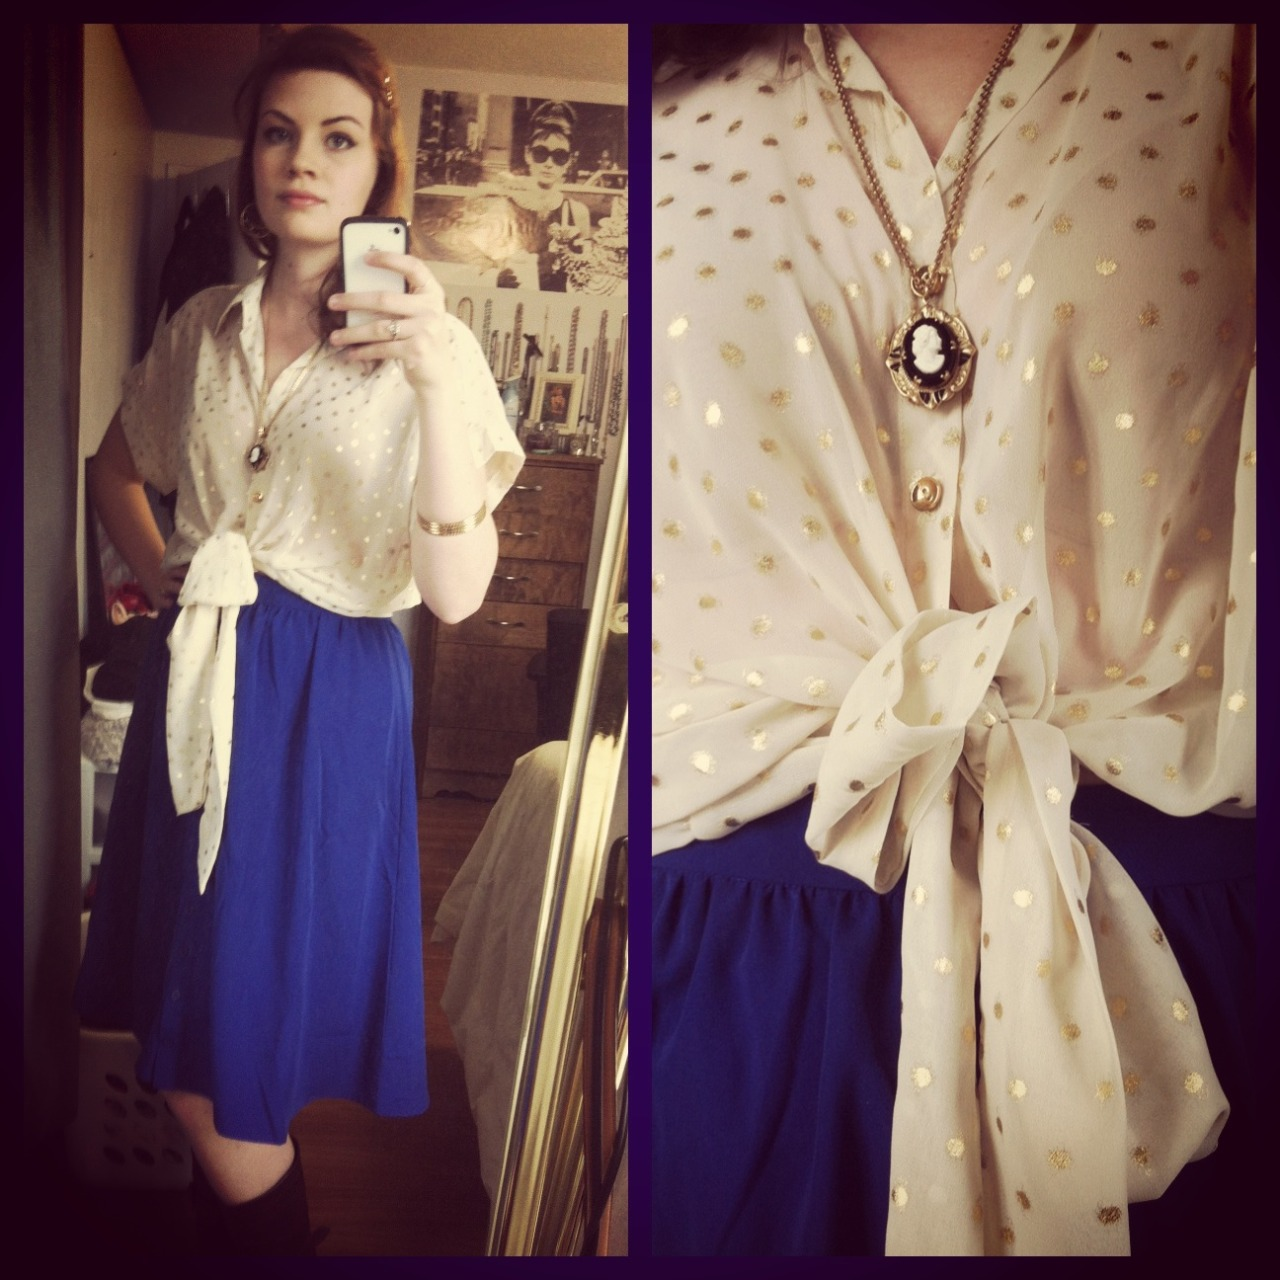 shelvestostreets:  Outfit inspired by Elizabeth (Bioshock Infinite) I wanted to replicate the vintage style of the game through a longer cut skirt. The shirt is reminiscent of Elizabeth's first outfit with the front tie. I also chose a cameo necklace to add more of a vintage splash and bird earrings as a nod to Song Bird.  Skirt: Forever 21, Top: Marshalls, Necklace: Vintage Stone, Earrings: Lucky Brand, Bracelets: Forever 21 Style Advice: When wearing a front tie top, be sure to tie up the top before you button it. The buttons secure the tie from coming undone and keep it positioned nicely.   Since there's no new outfit today (I apologize - I'm super swamped with my last exam coming up on Wednesday), I thought I'd still give you a gaming inspired outfit! This one is inspired by Elizabeth from Bioshock Infinite and put together by me in real life! I'm starting to do more and more inspired outfits in my daily attire and figured I'd share the best ones on here periodically.